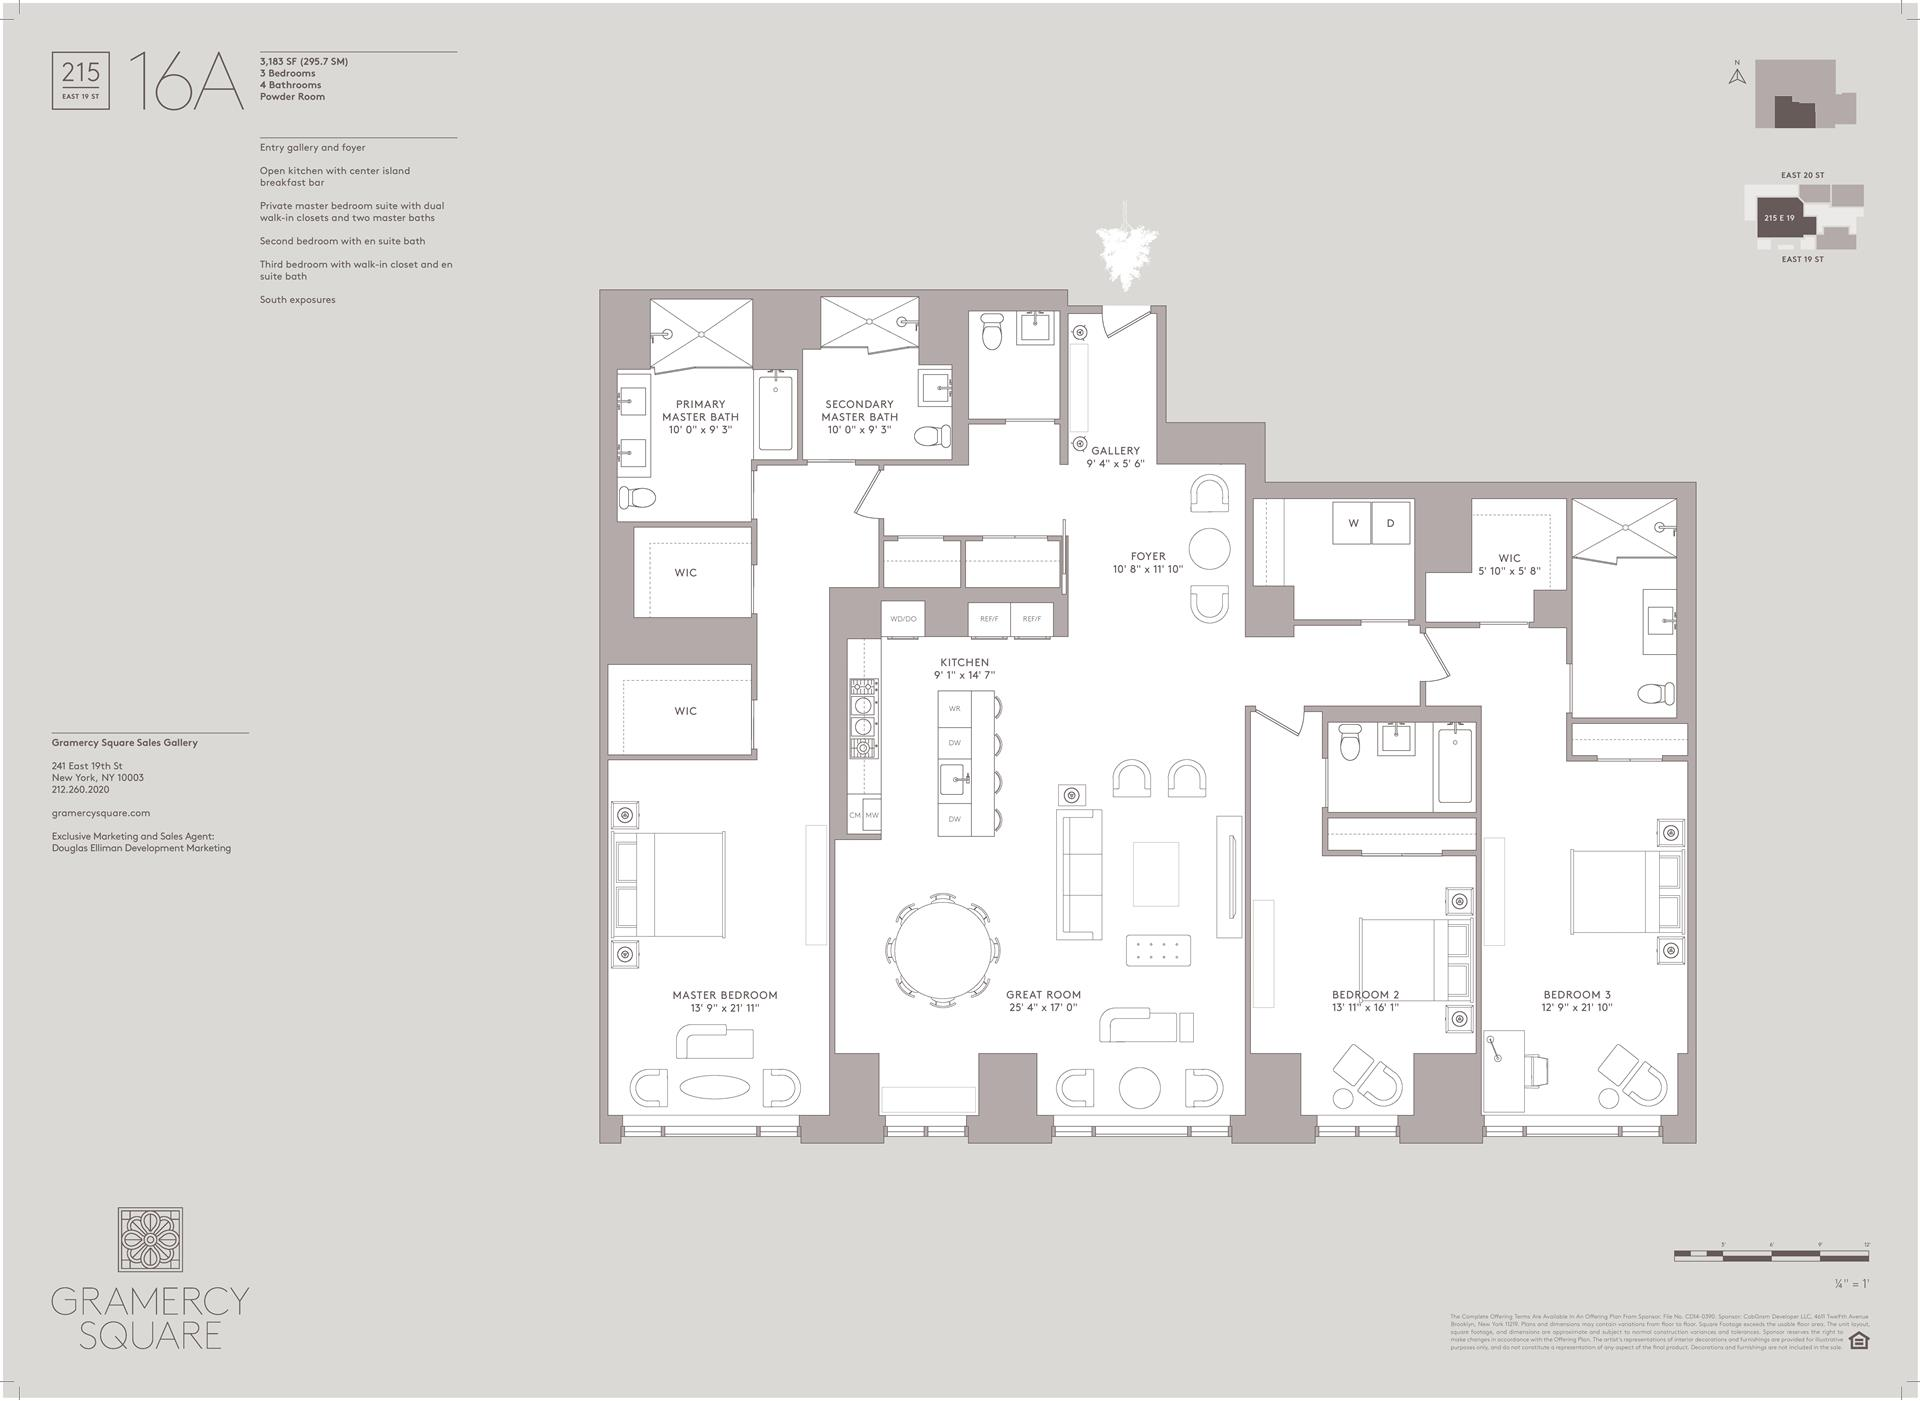 Floor plan of Gramercy Square, 215 East 19th St, 16A - Gramercy - Union Square, New York